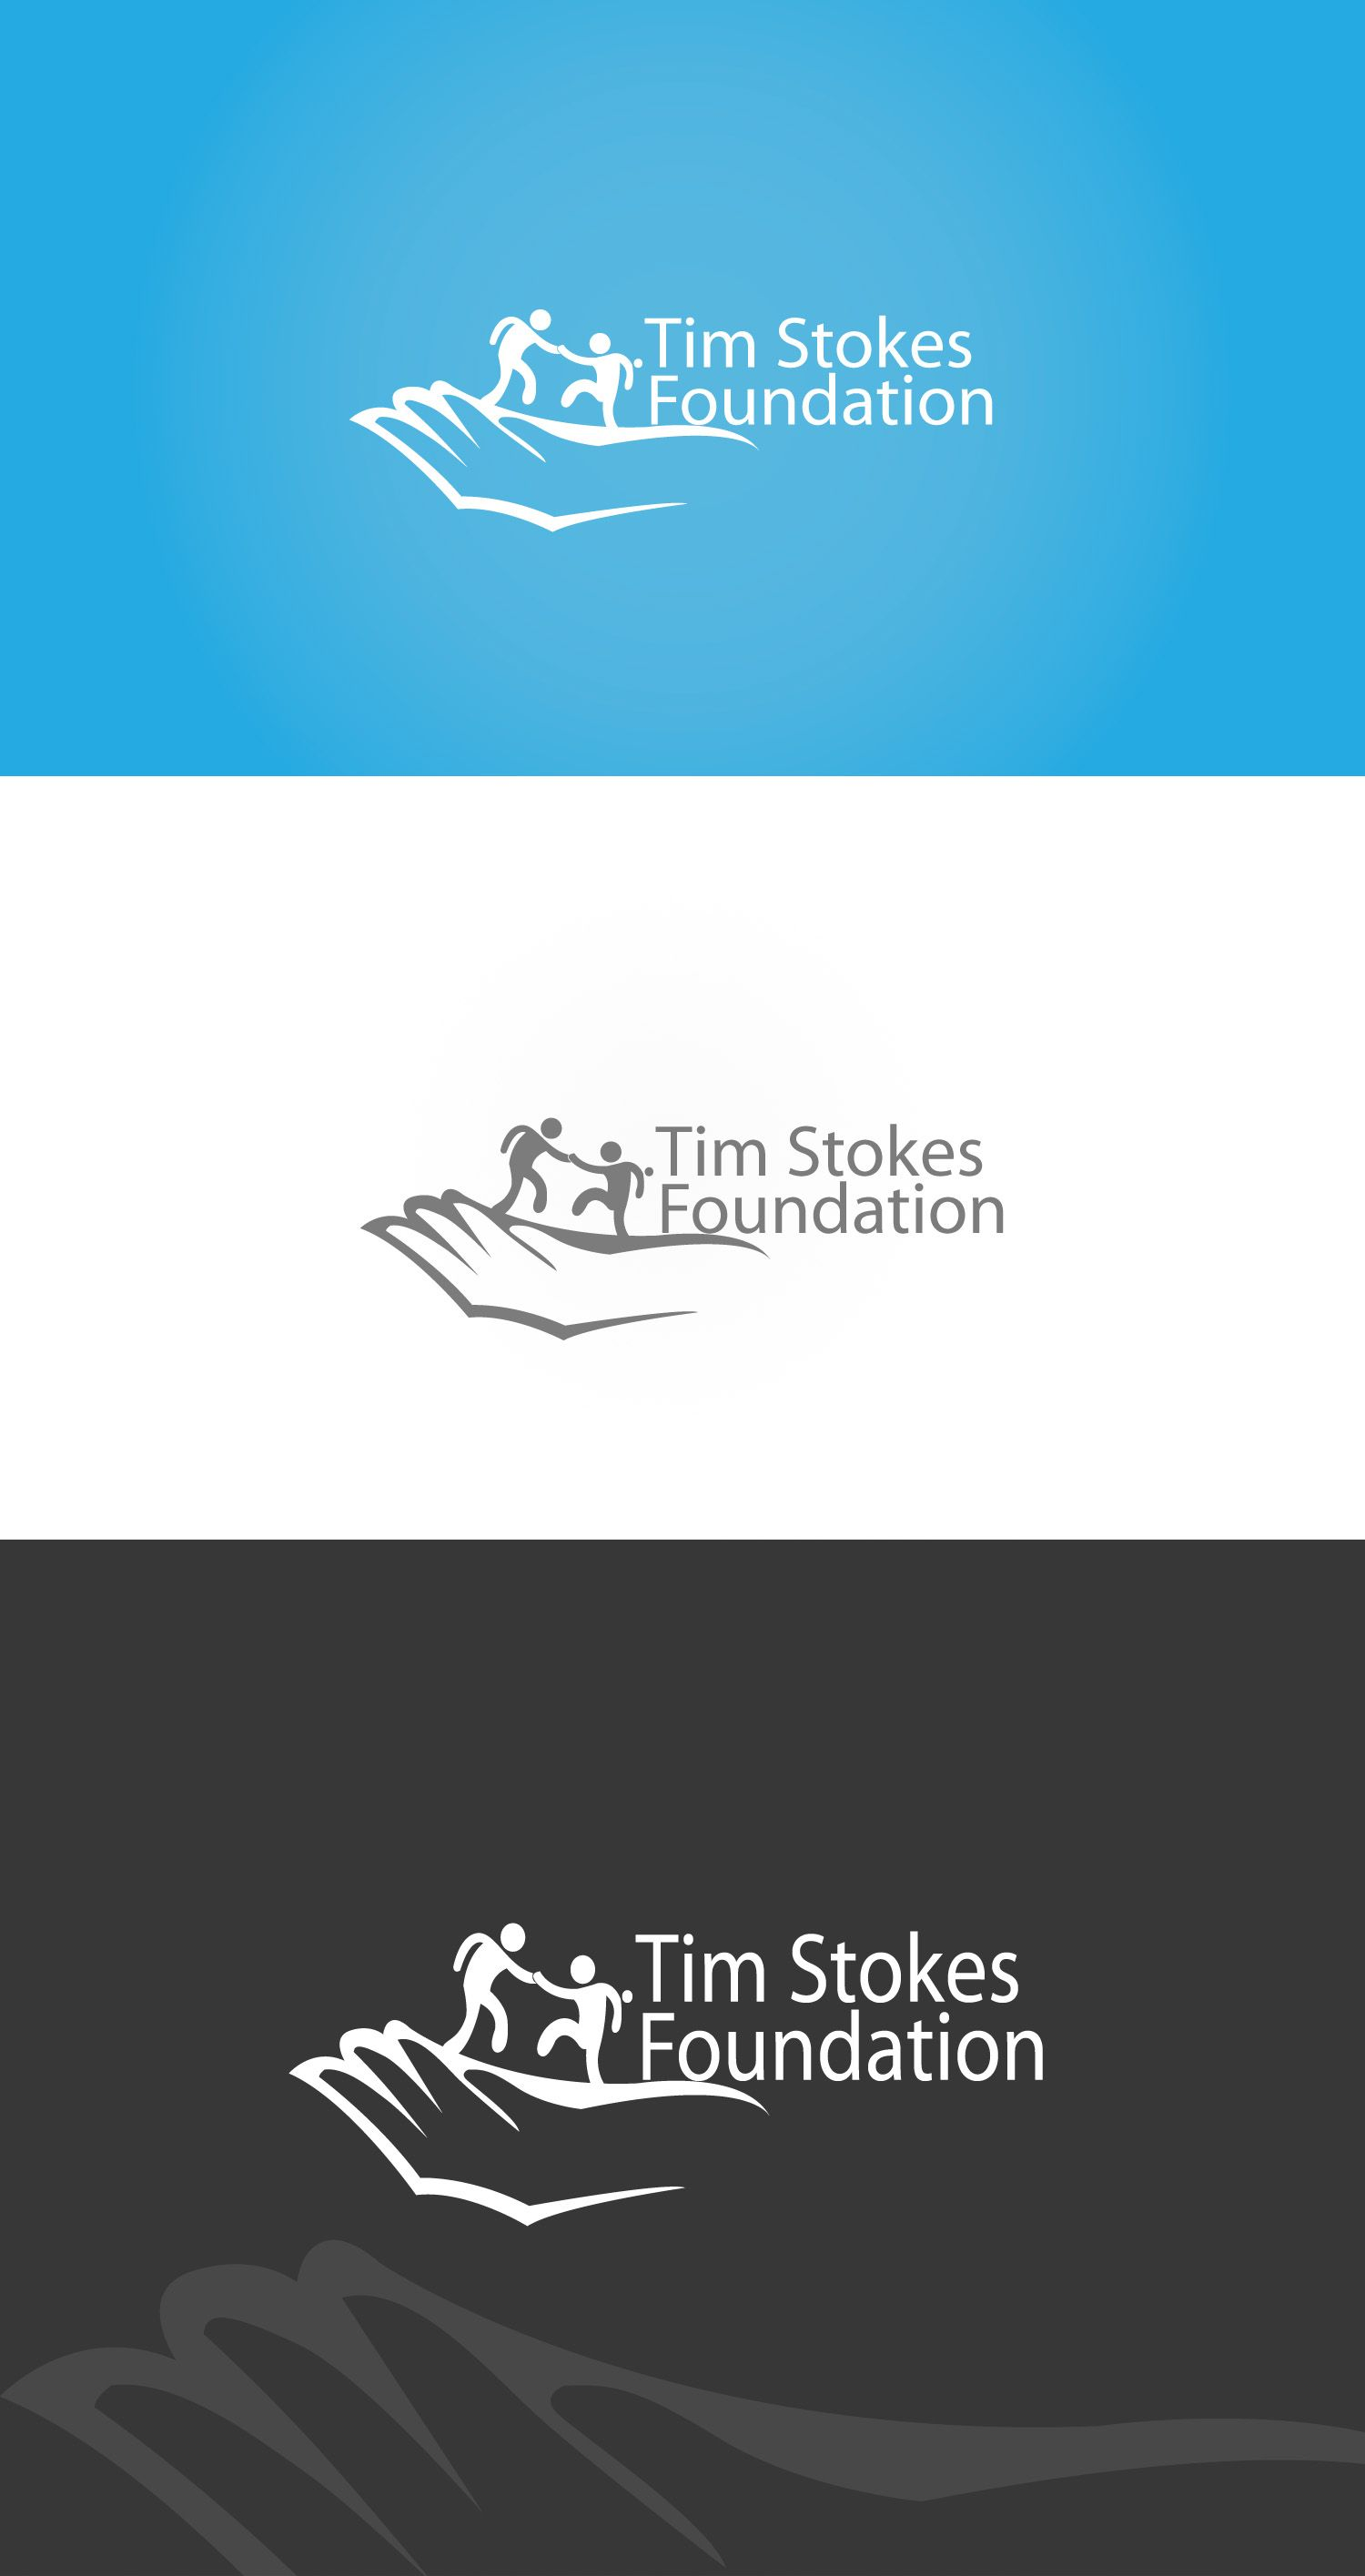 Tim Stoke Foundation  design by me